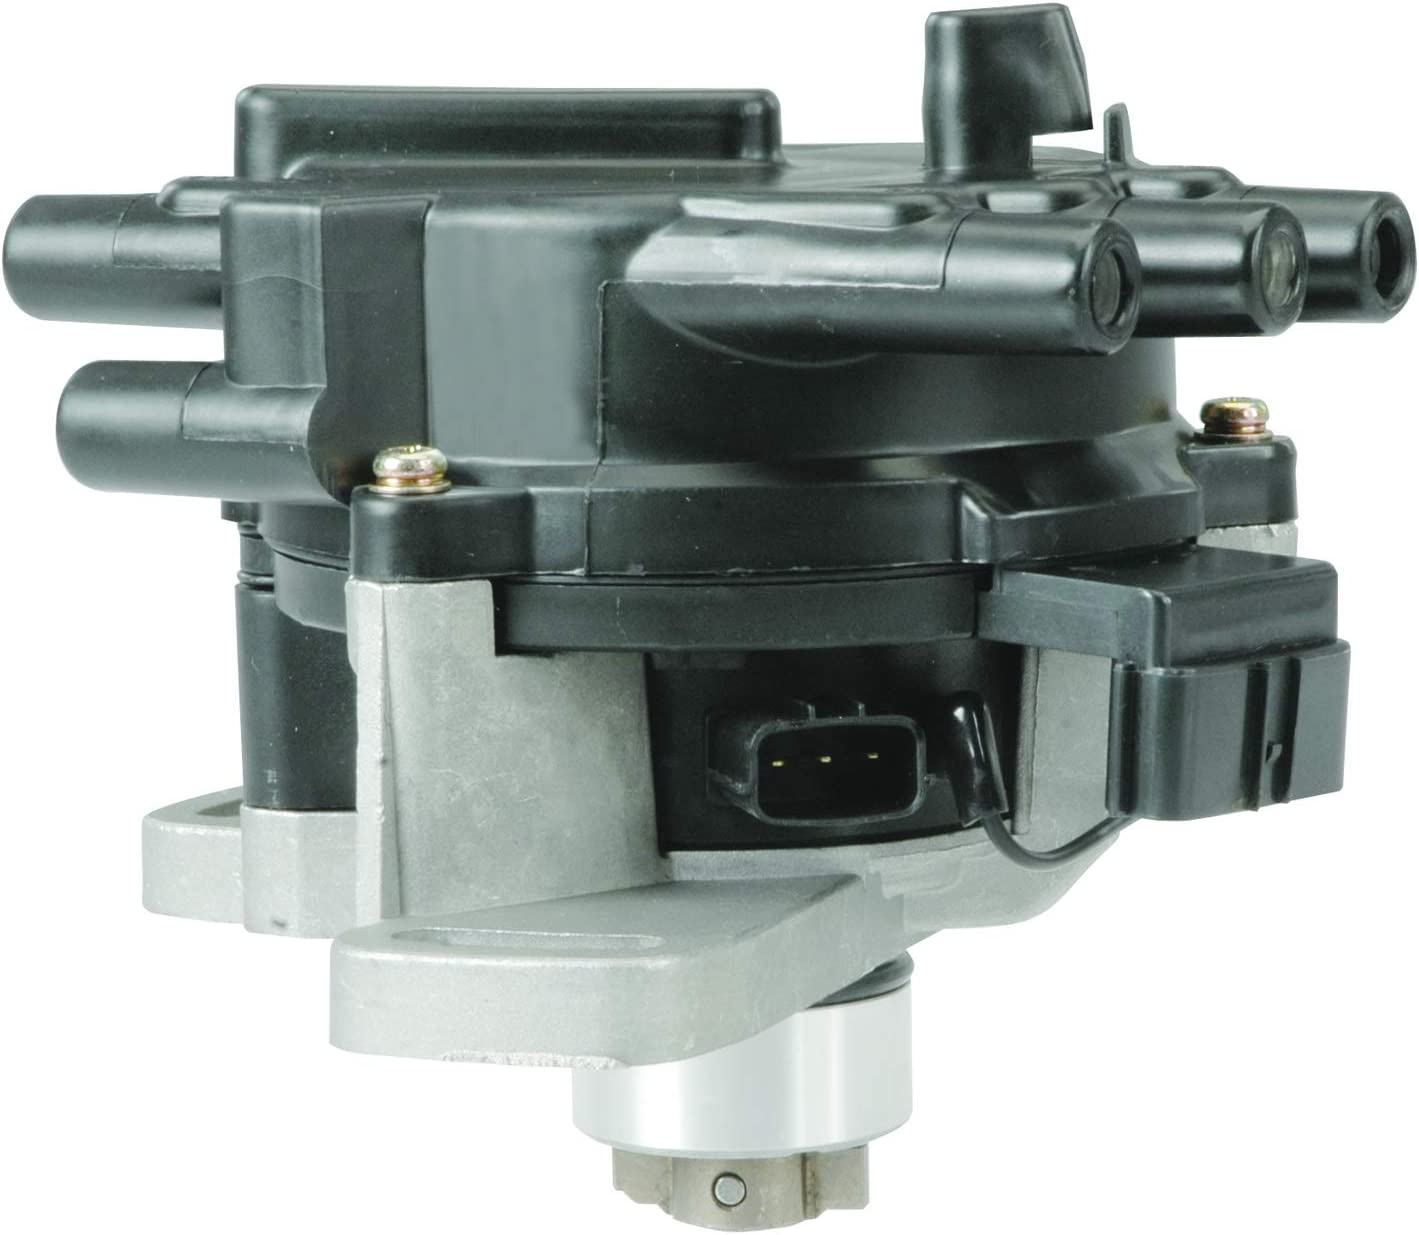 NEW Distributor 67% OFF of fixed price Compatible With Mazda 2.5L 626 1995-1997 2497Cc Sale price